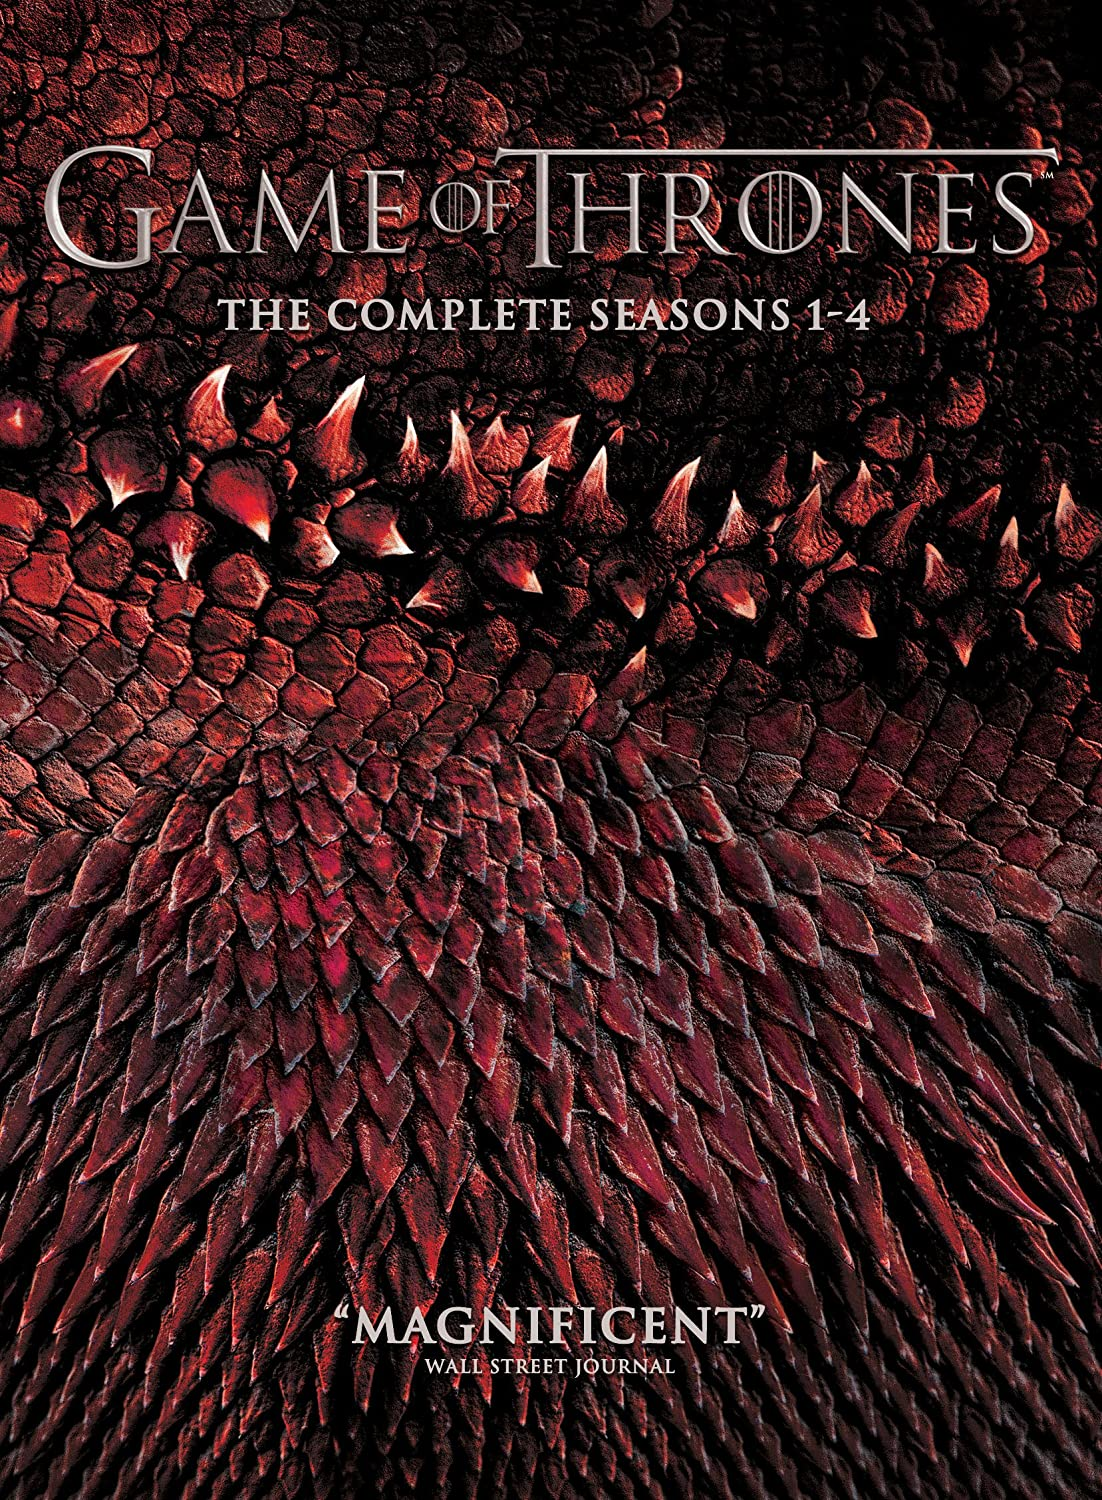 game of thrones season 1 download hd 1080p